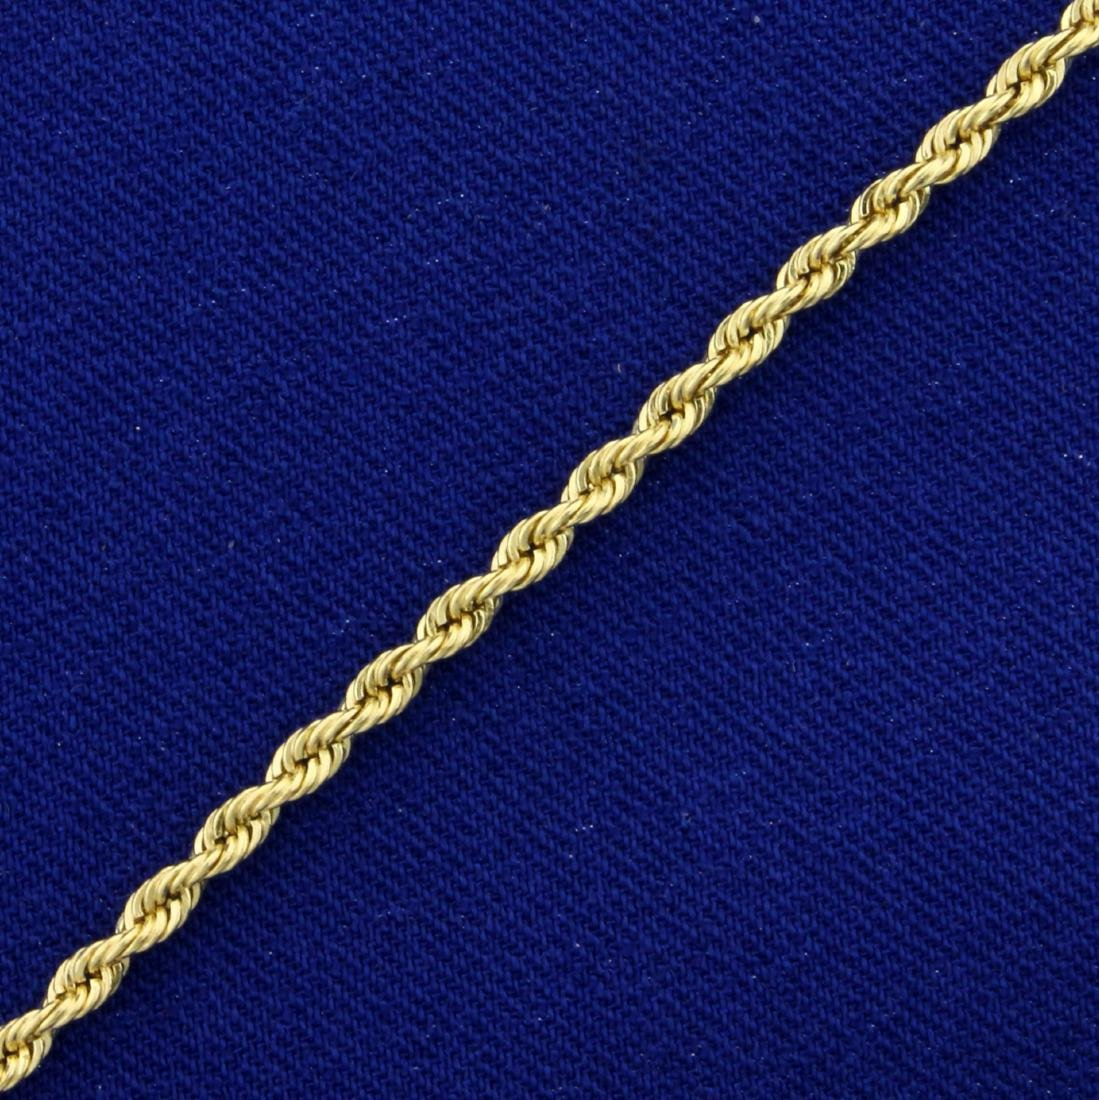 7 Inch Rope Style Bracelet in 14K Yellow Gold - 2